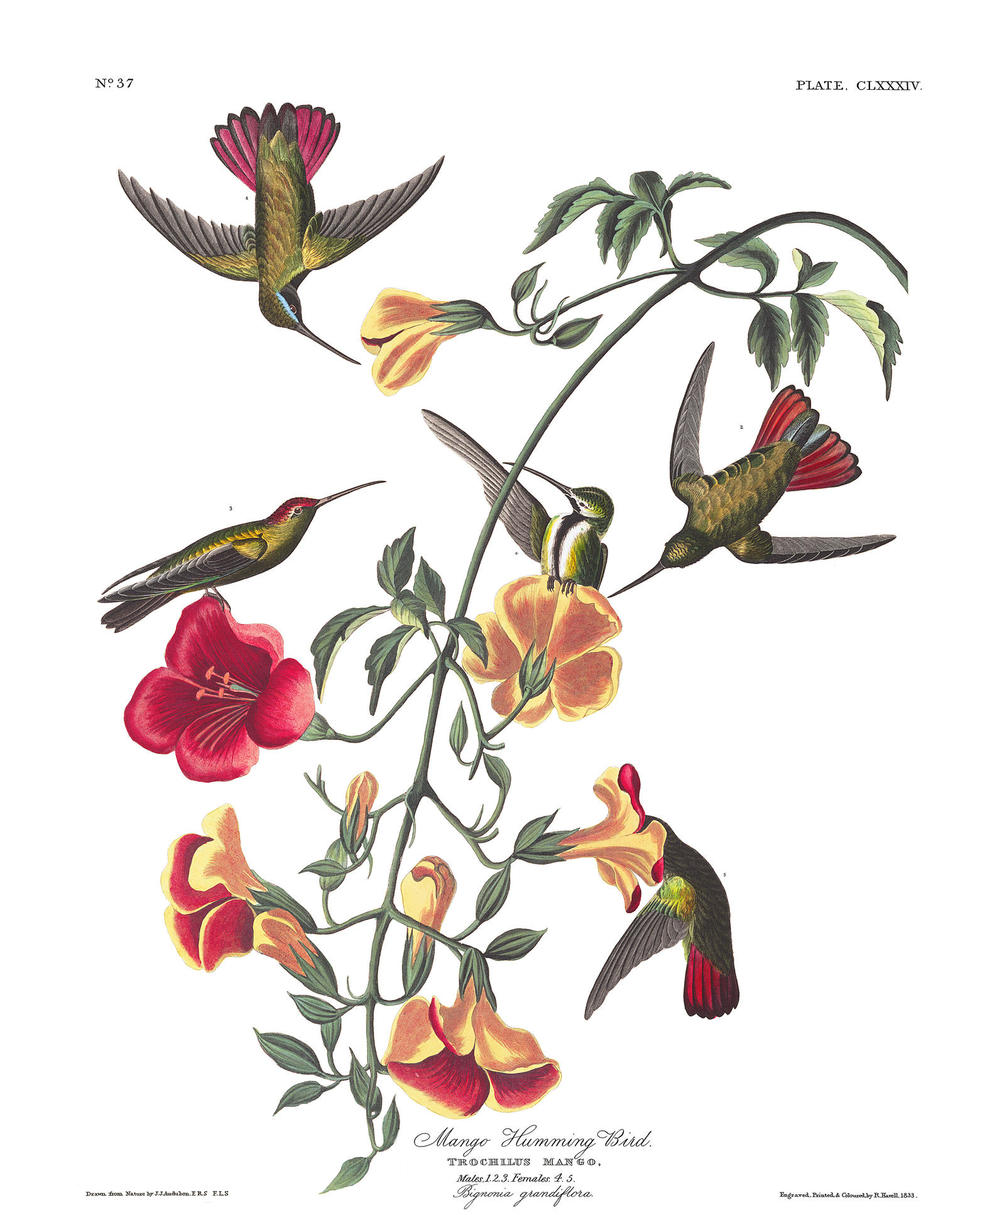 Audubon's Hummingbirds 1833